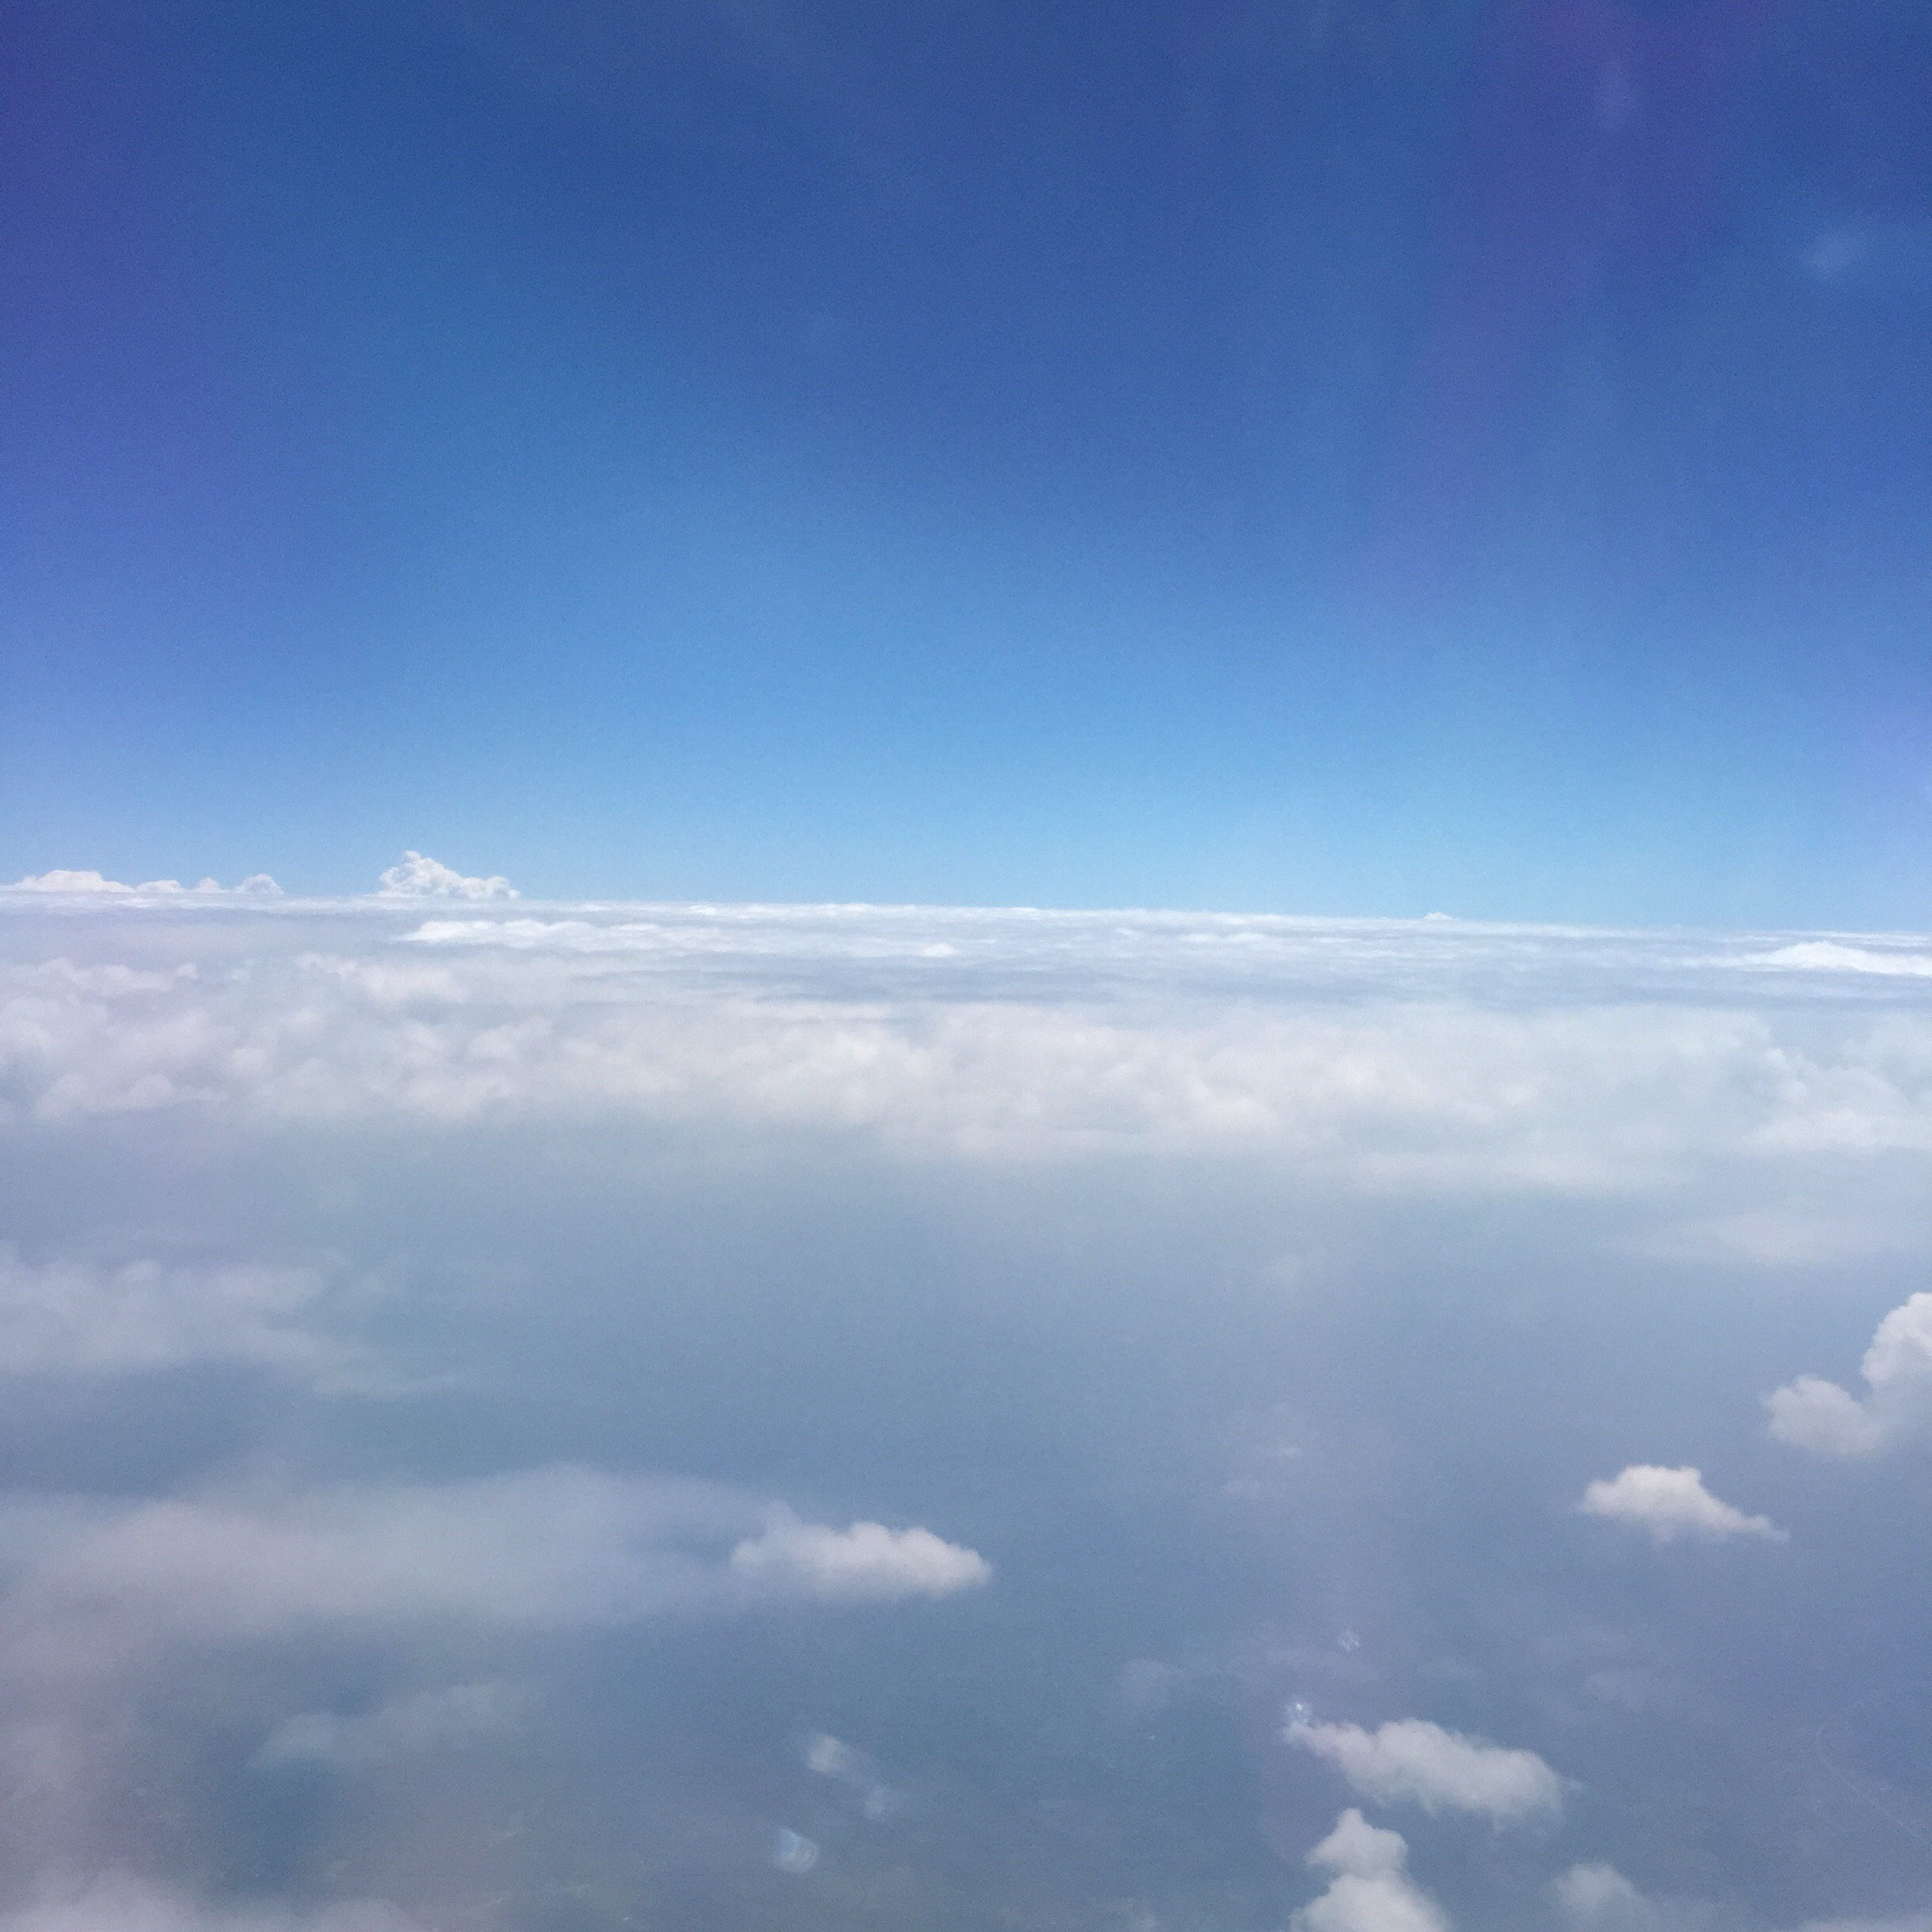 view from my United flight